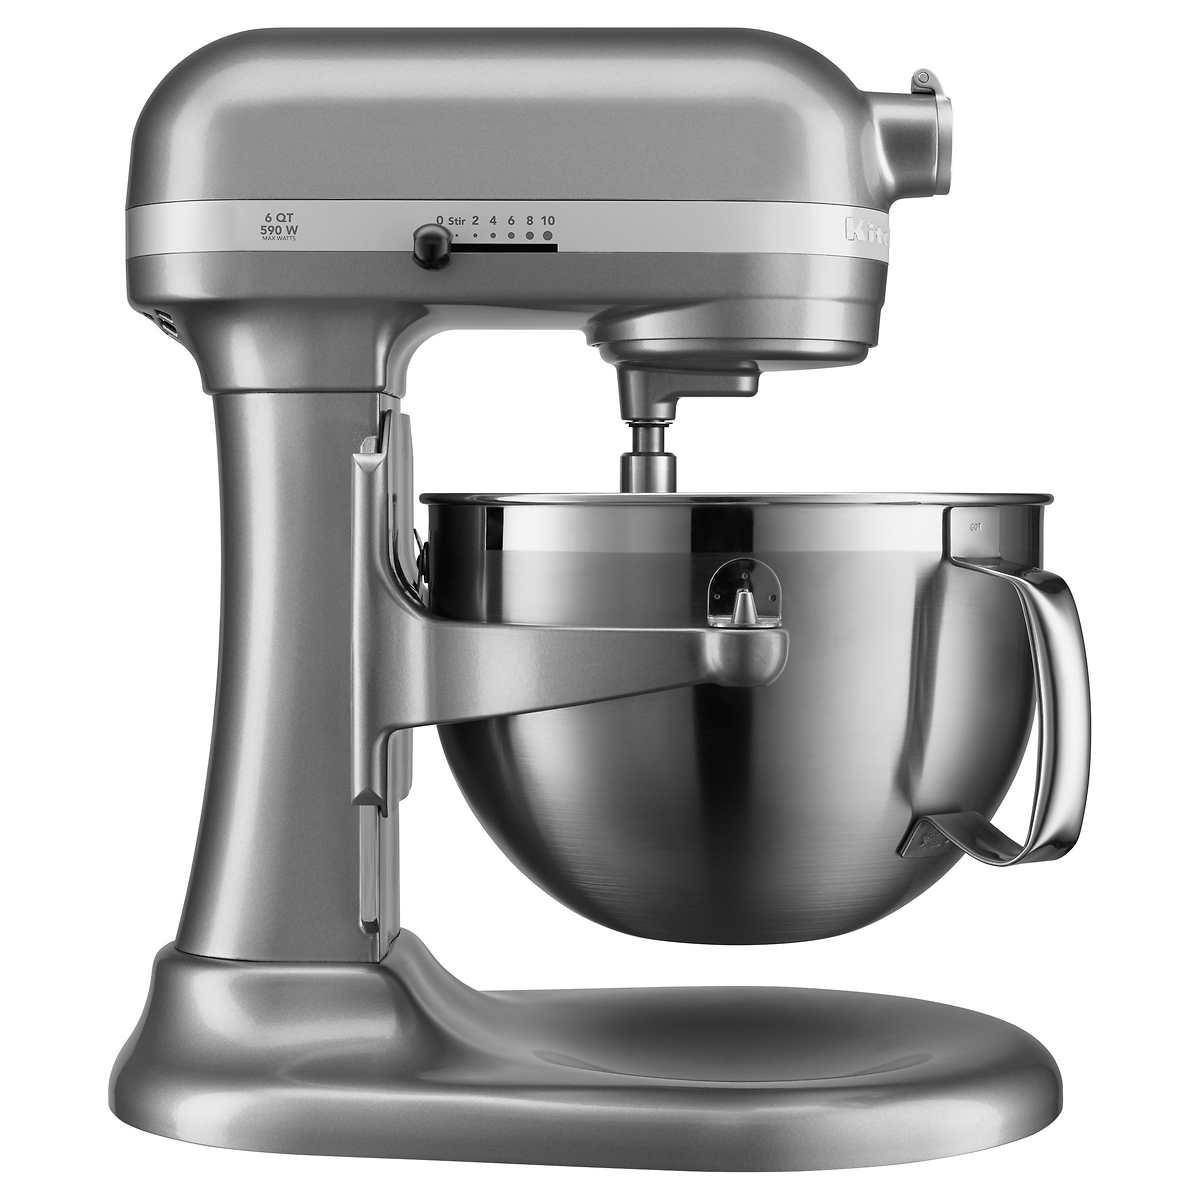 KitchenAid Professional Series 6 Quart Bowl Lift Stand Mixer w/ Flex Edge - Silver